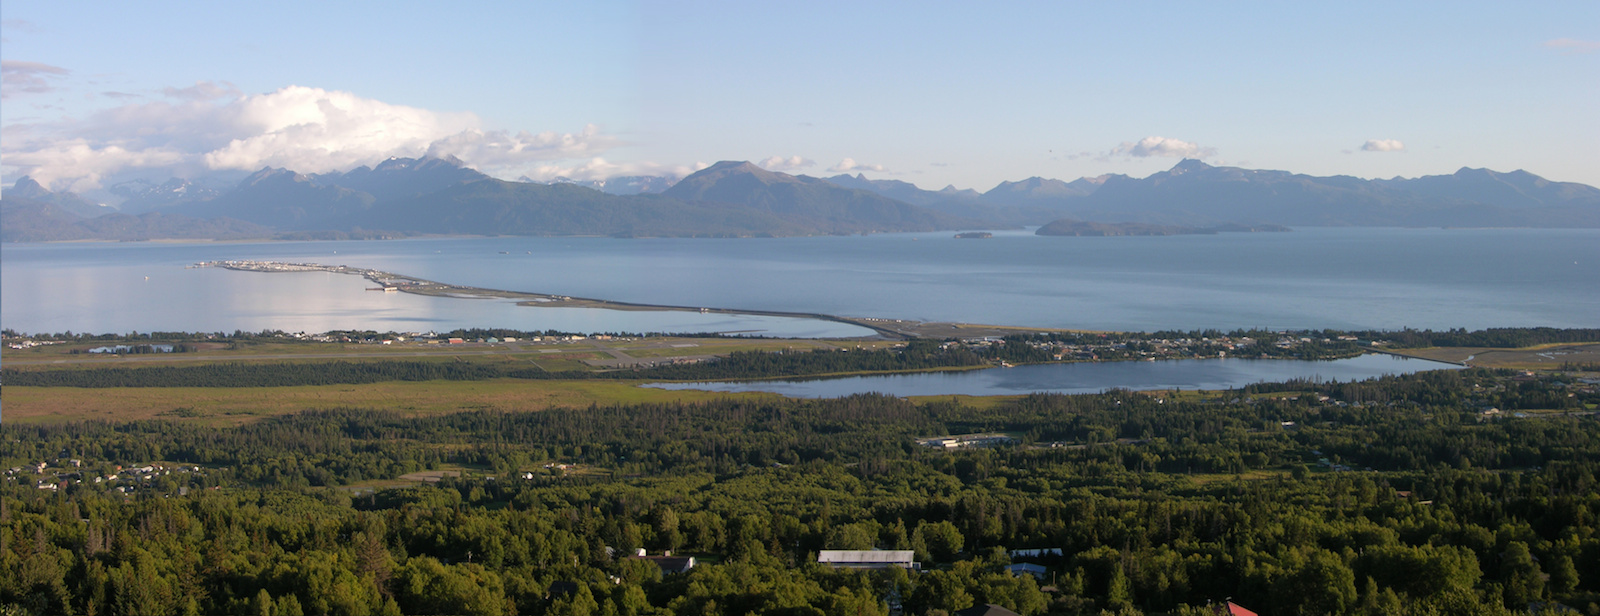 Panorama of the Homer Spit in Homer, Alaska